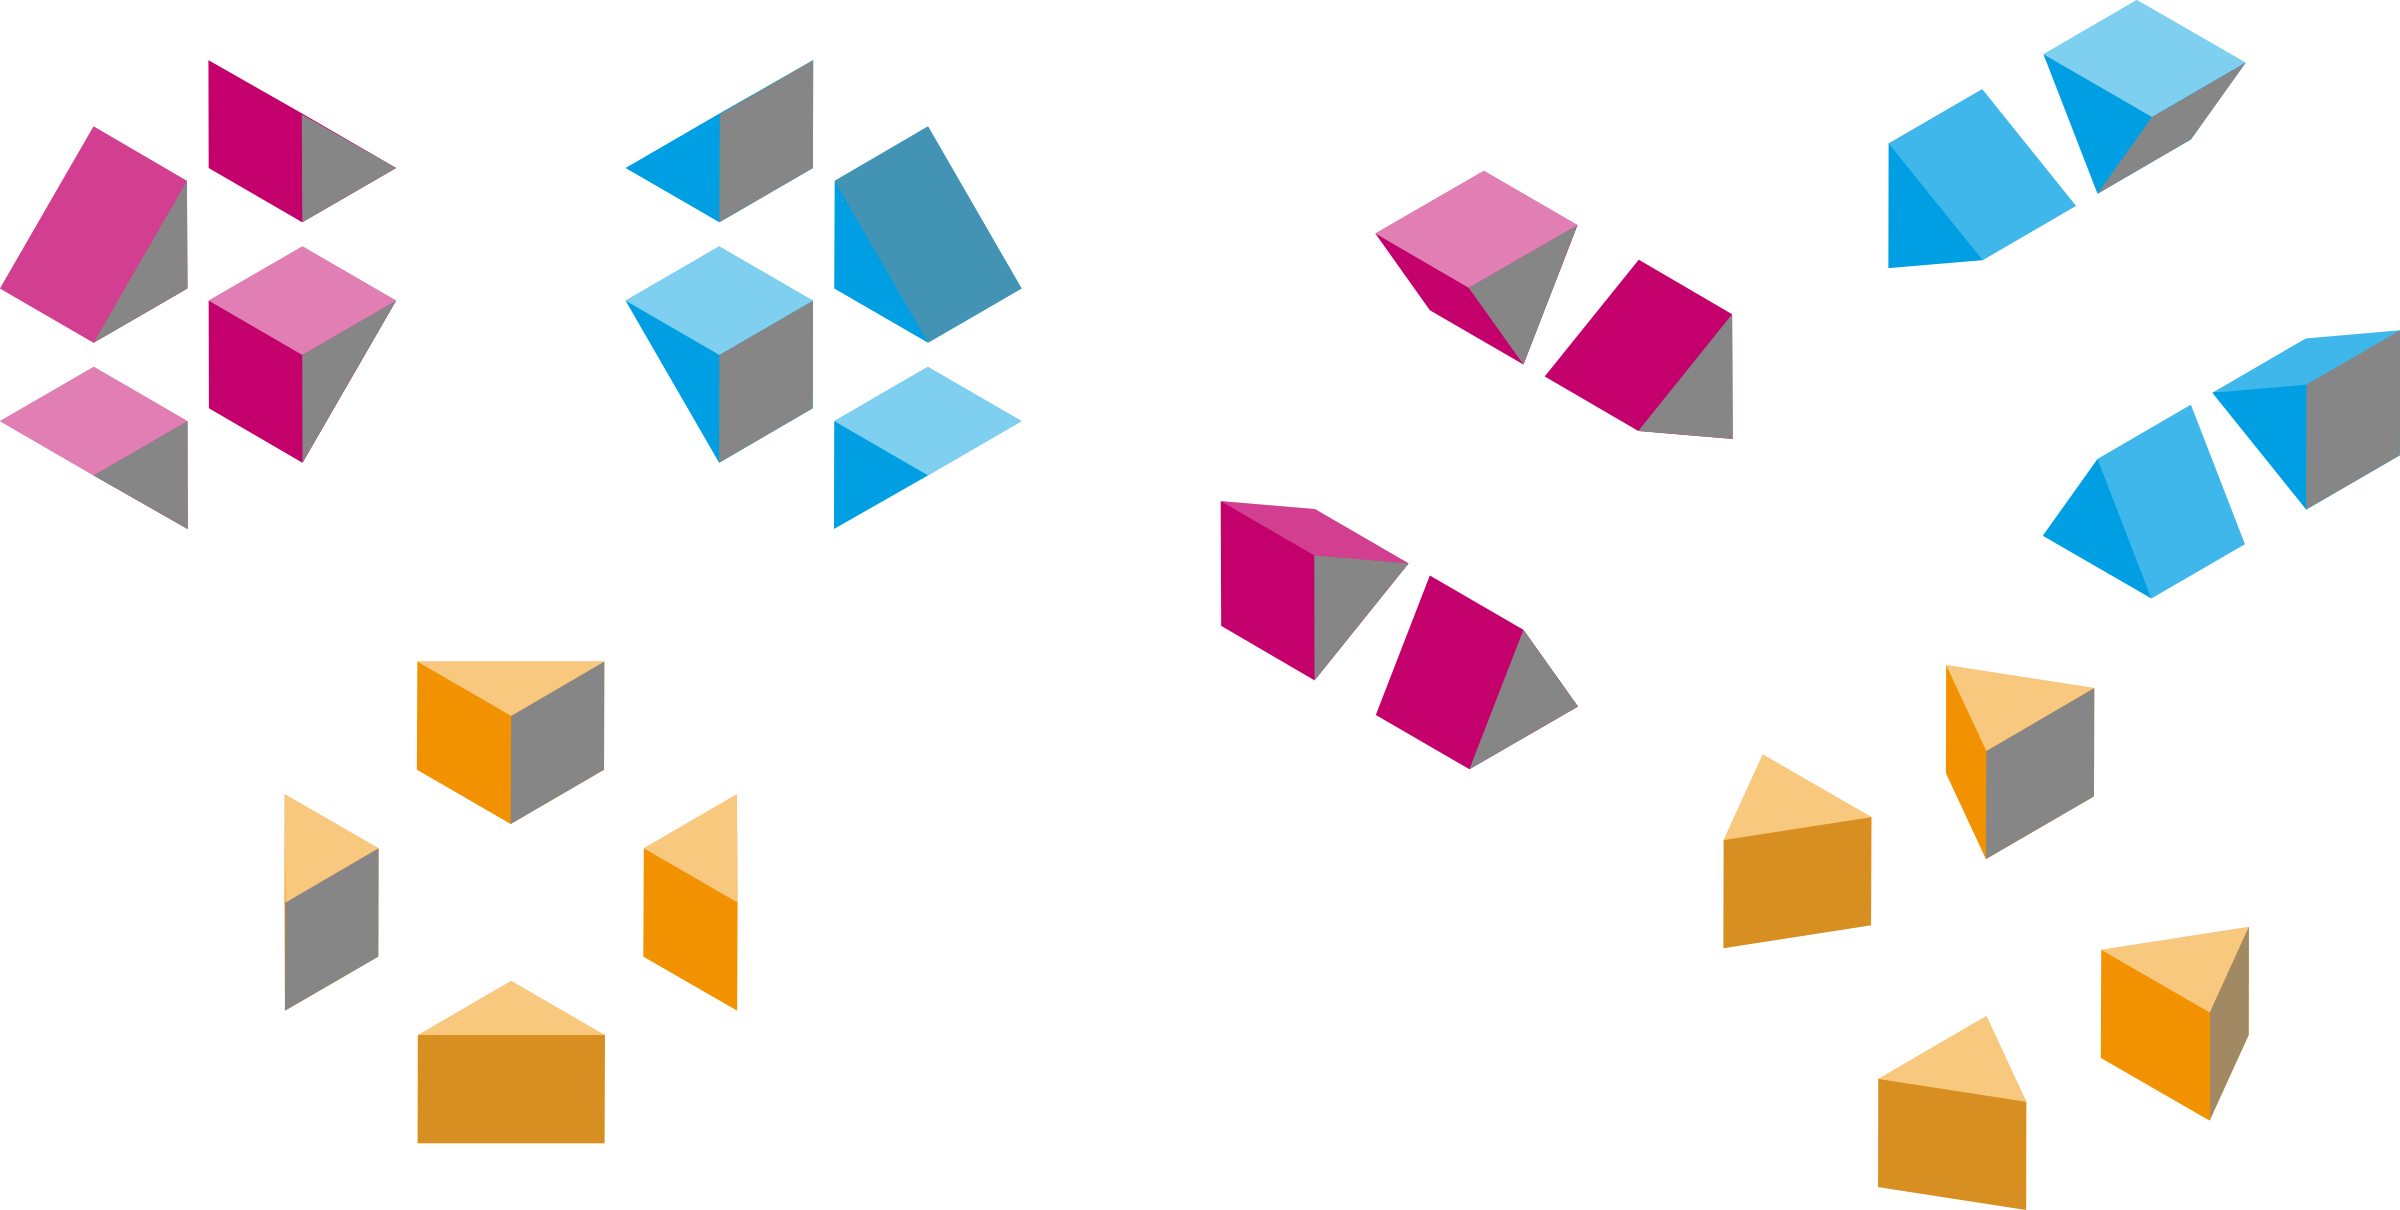 Isometric shapes 2 - triangles by gramzon